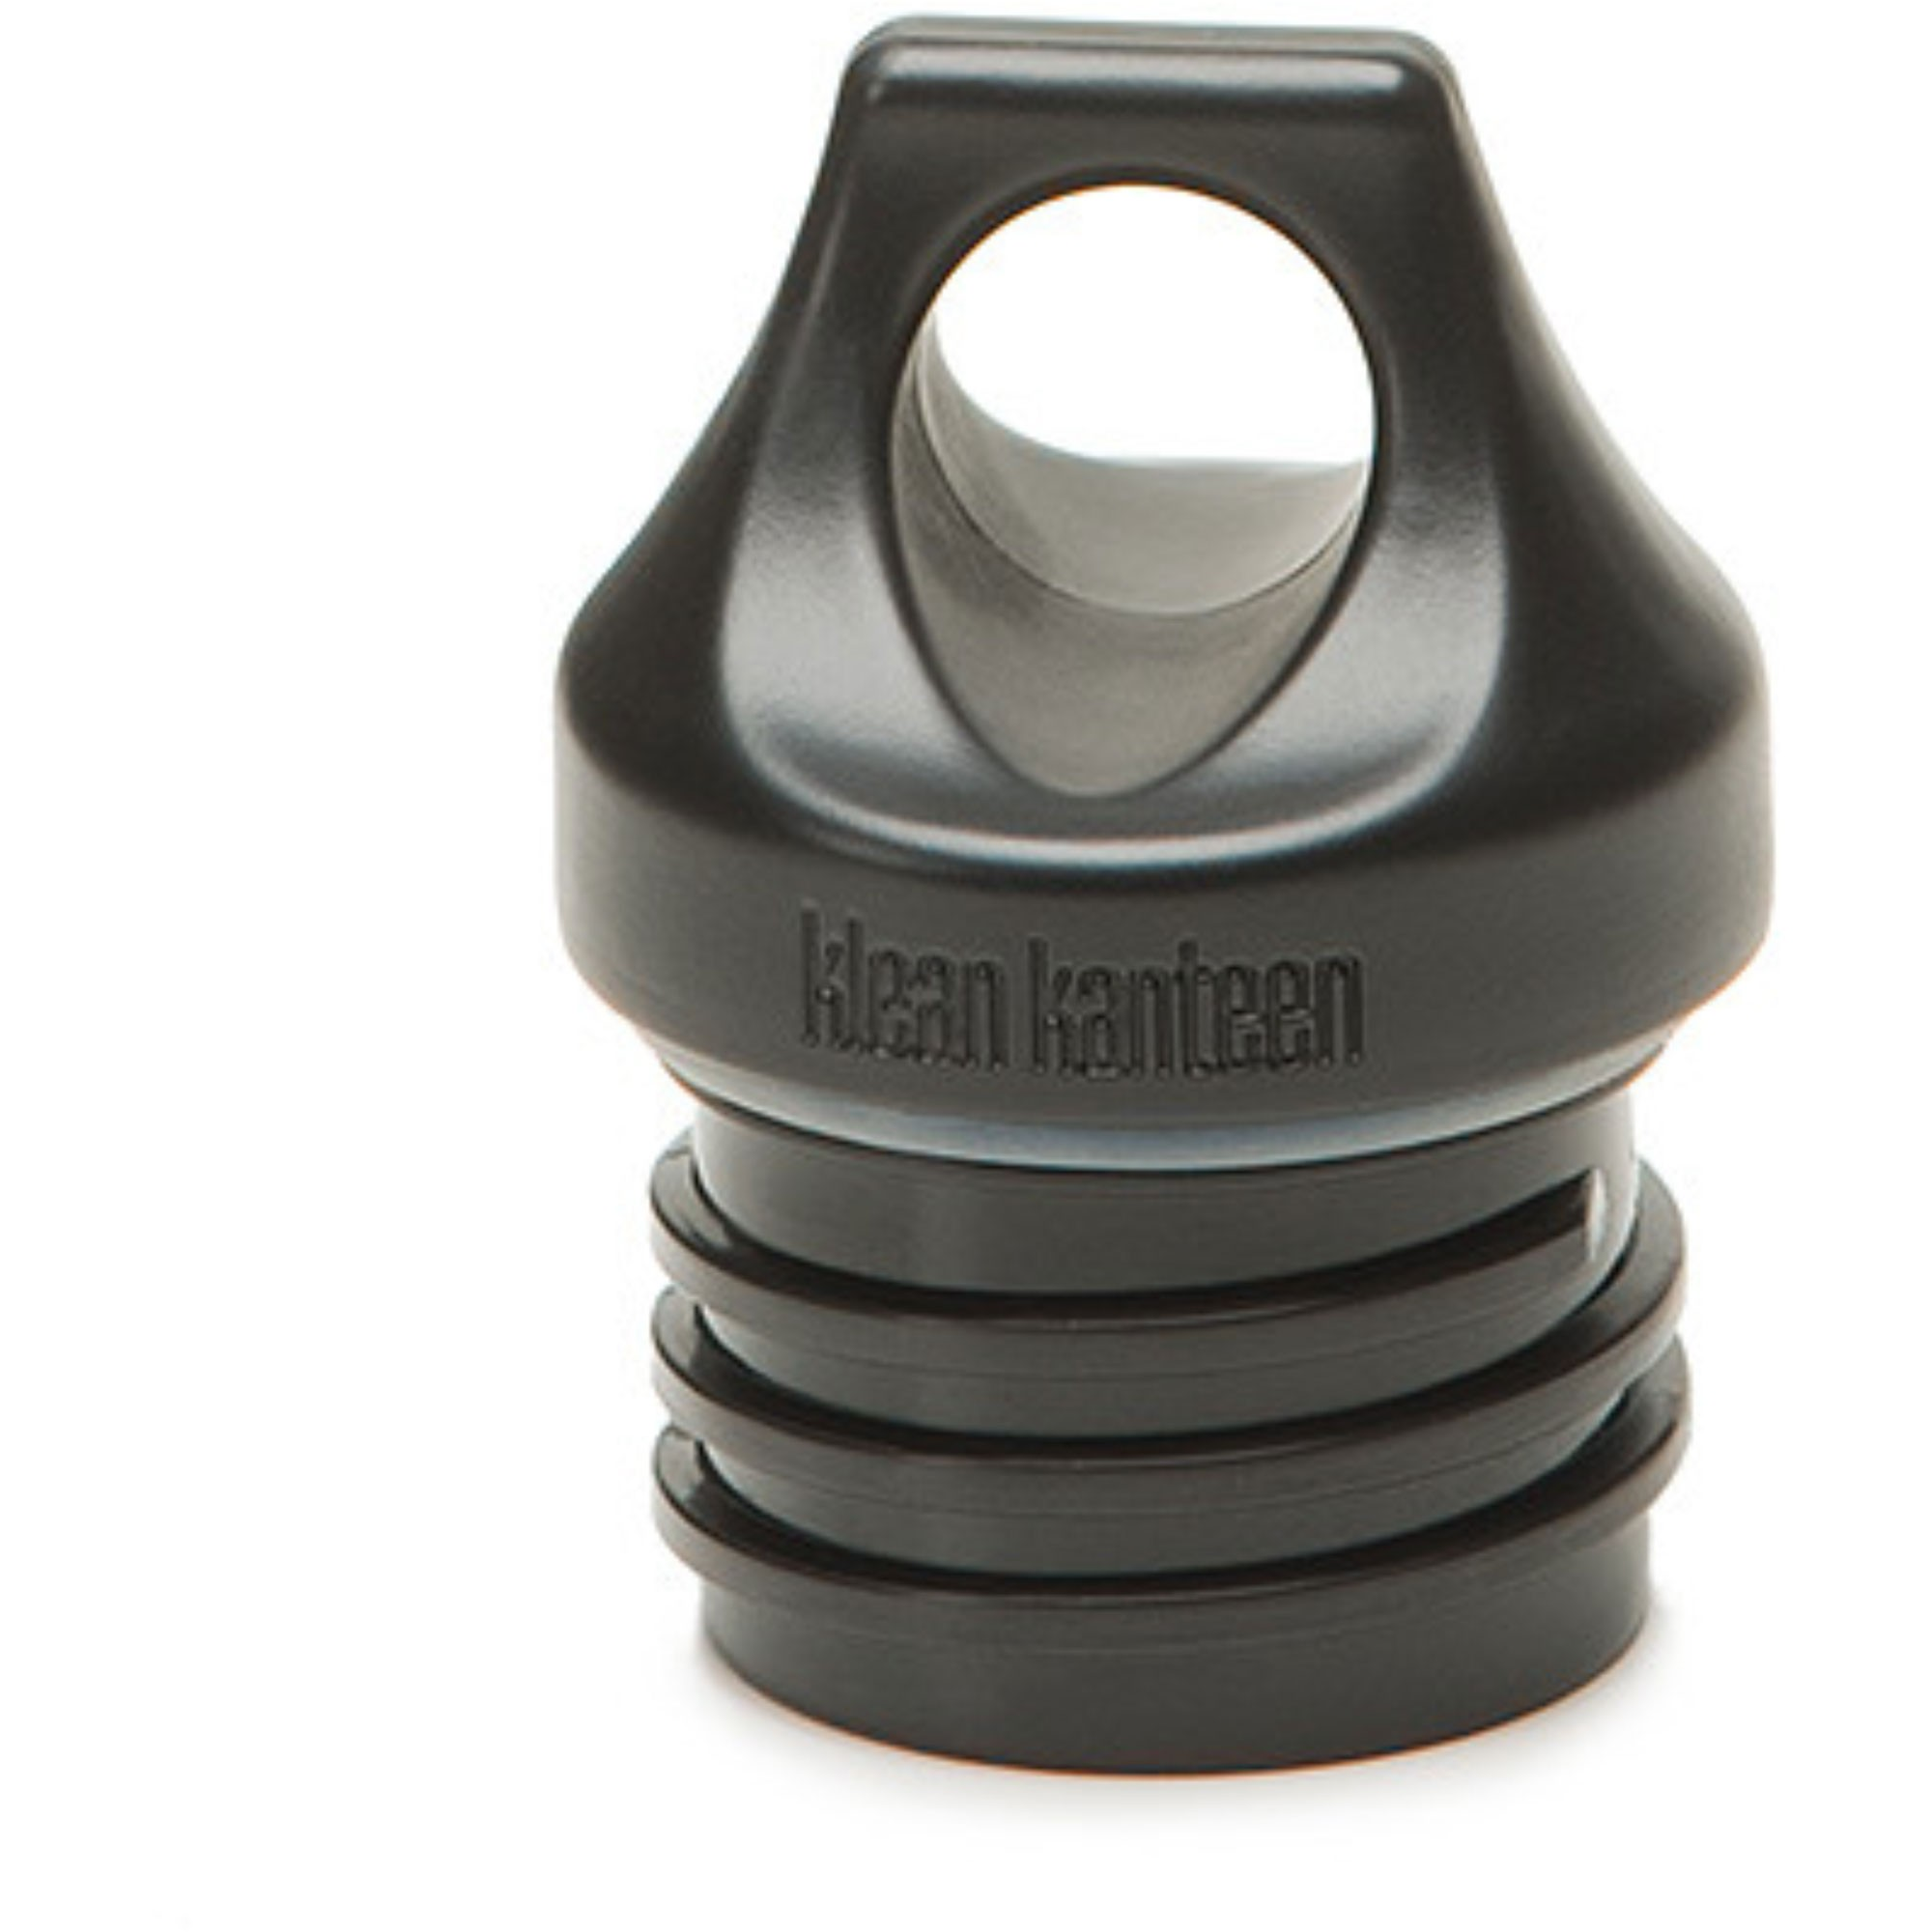 KLEAN KANTEEN - Replacement Lids and Caps